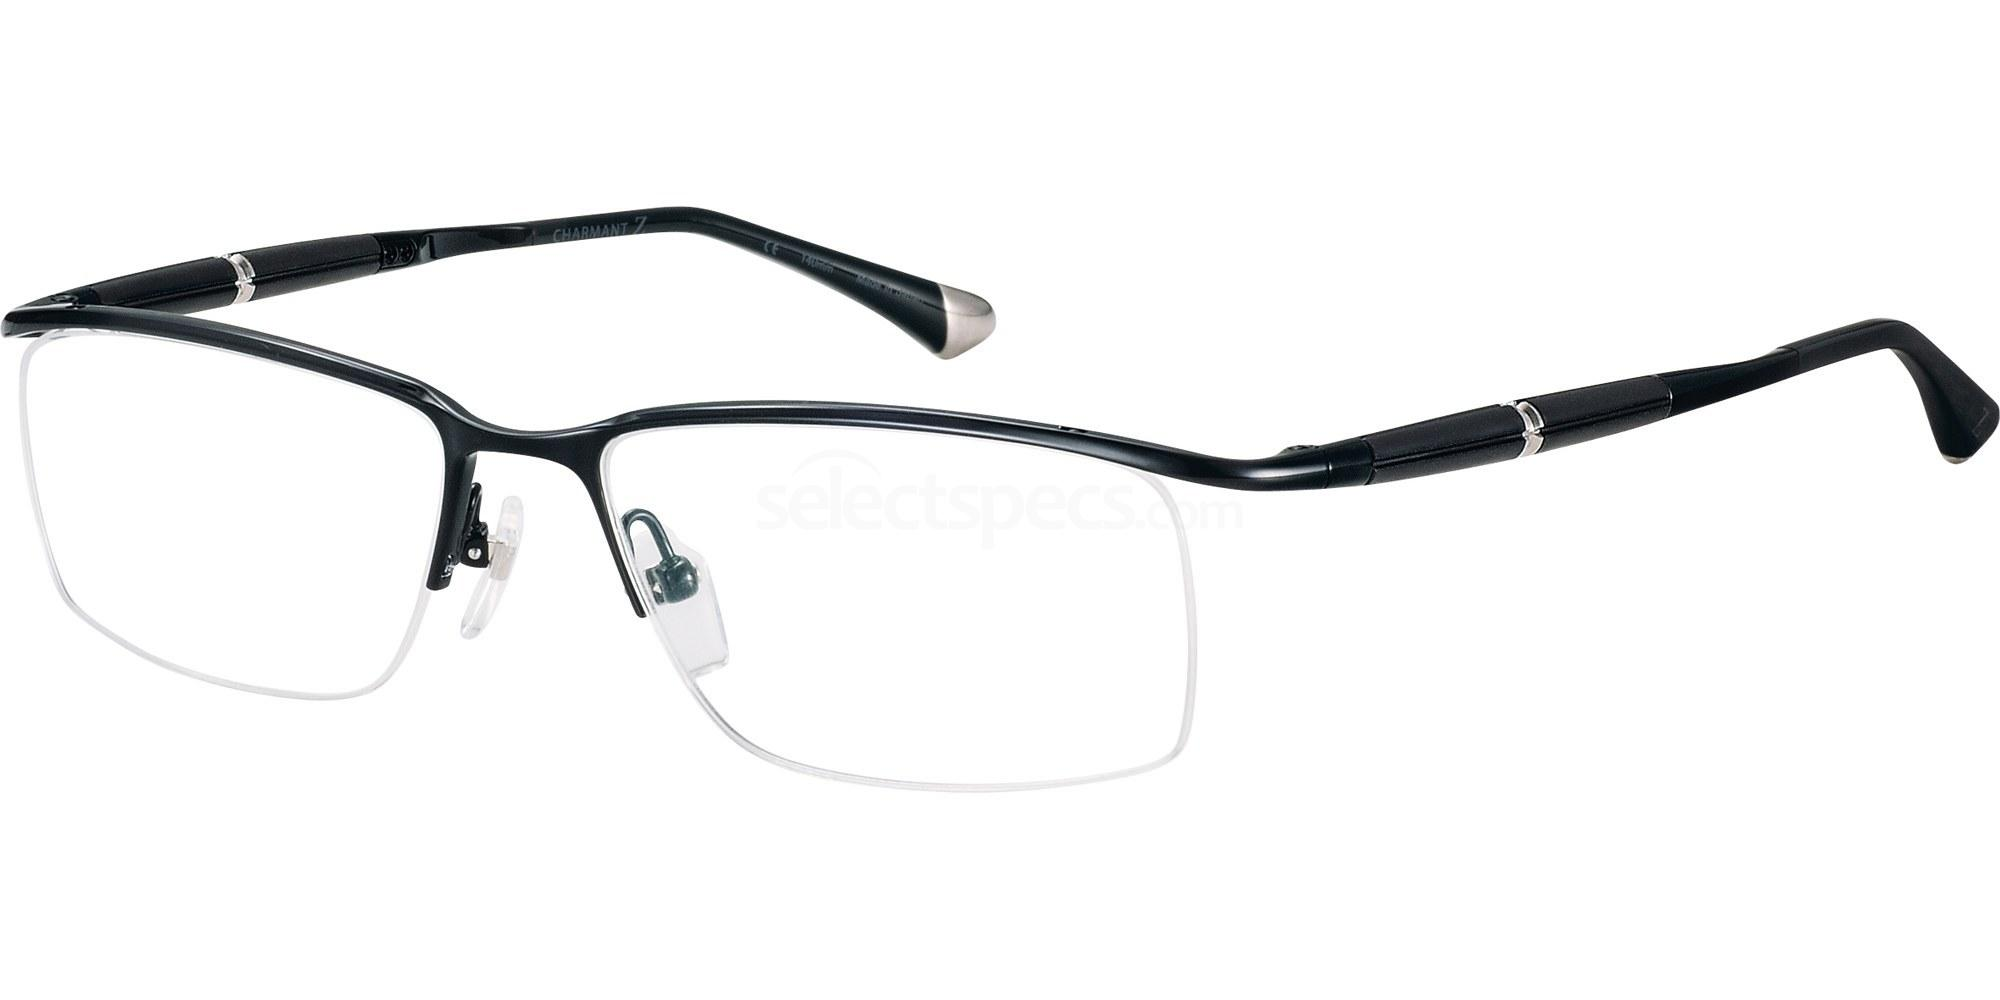 BK ZT19812 Glasses, Charmant Z